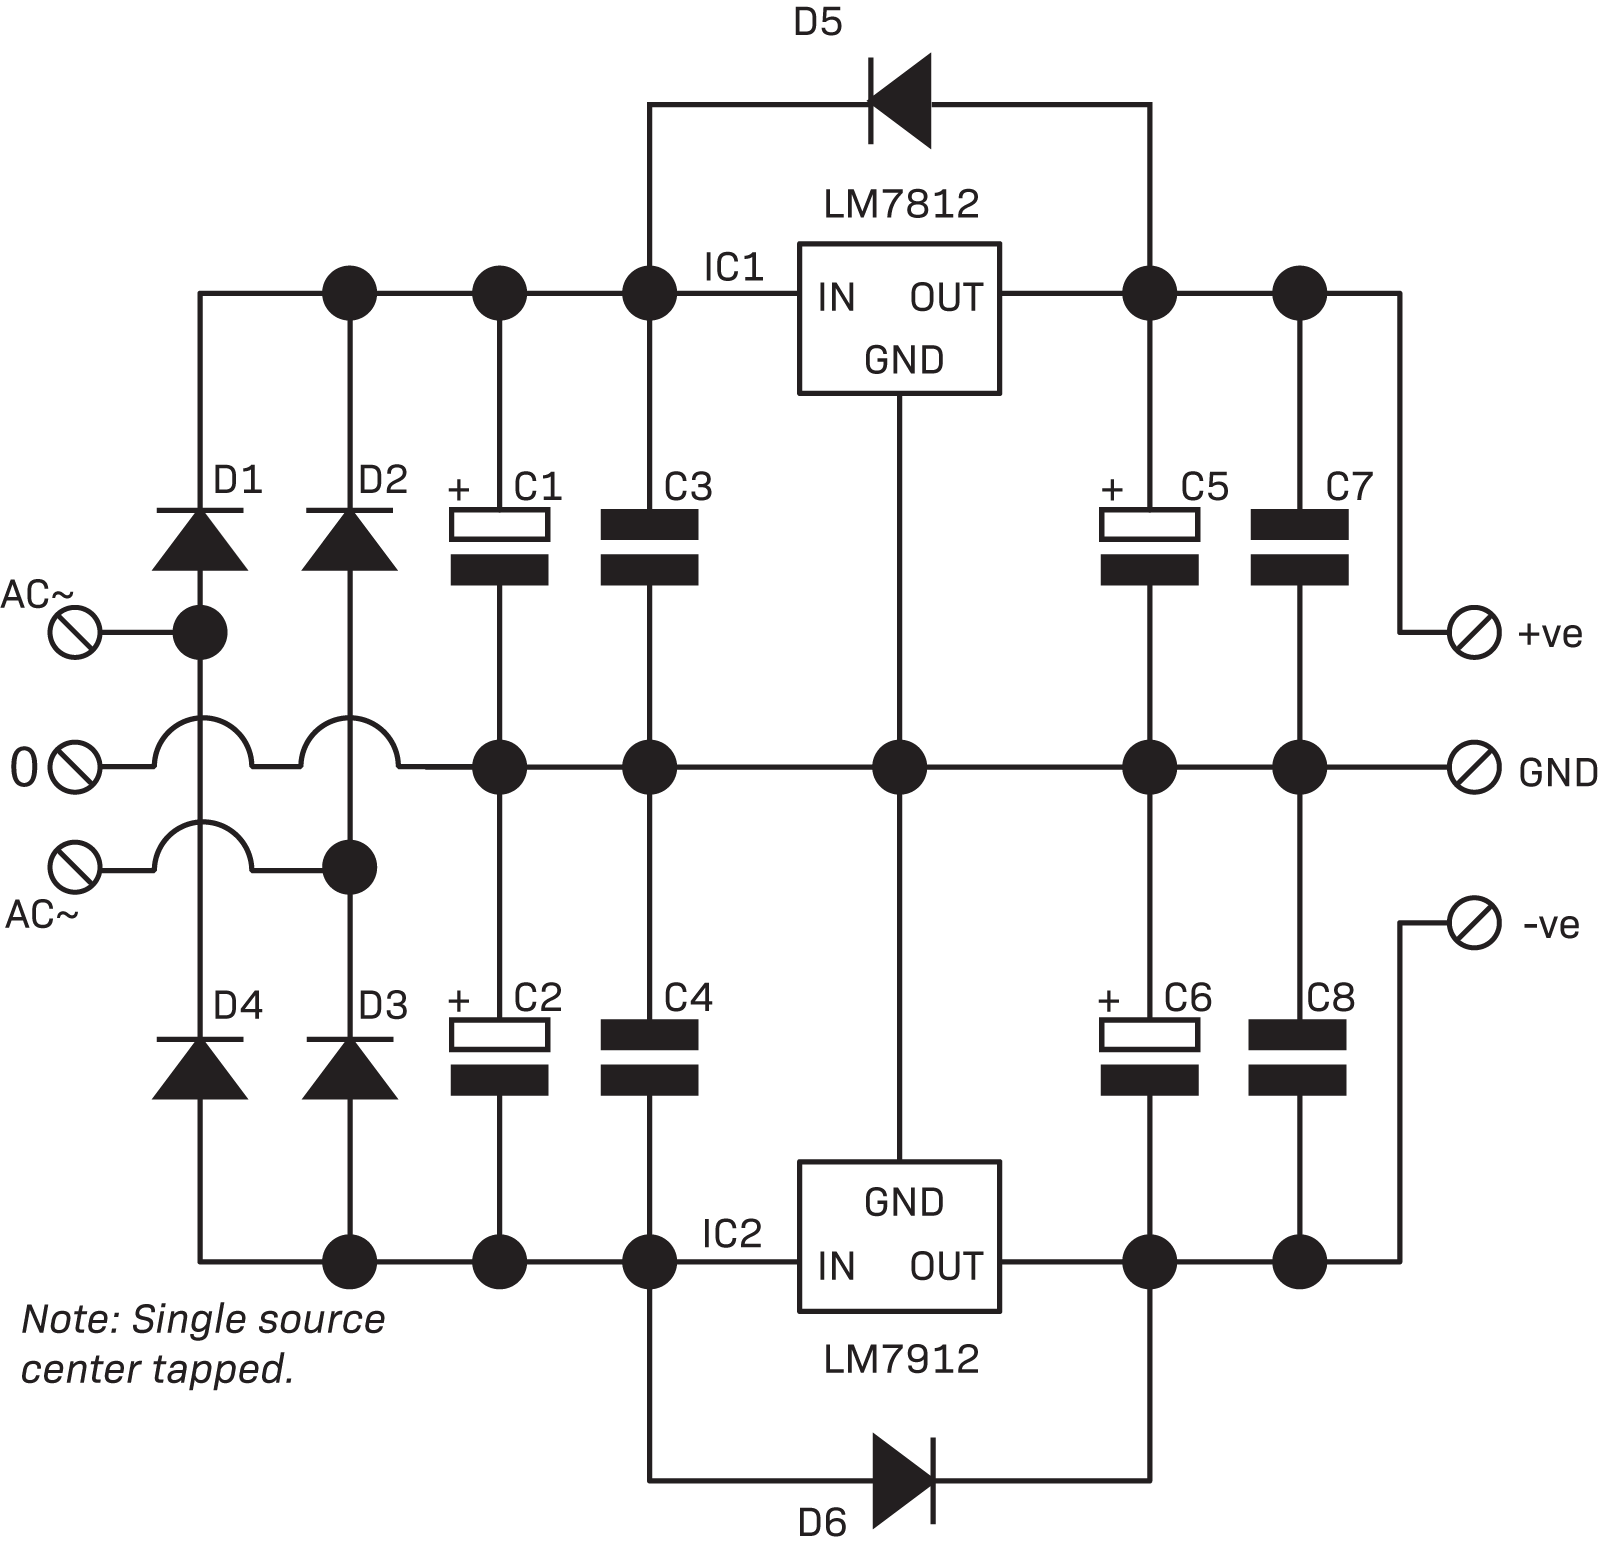 Part 3 The Linear Power Supply Diyode Magazine Symmetrical Regulated Schematic Circuits Supplies Connected Together 2 Circuit Is Useful For Op Amps And Devices Requiring 12vdc